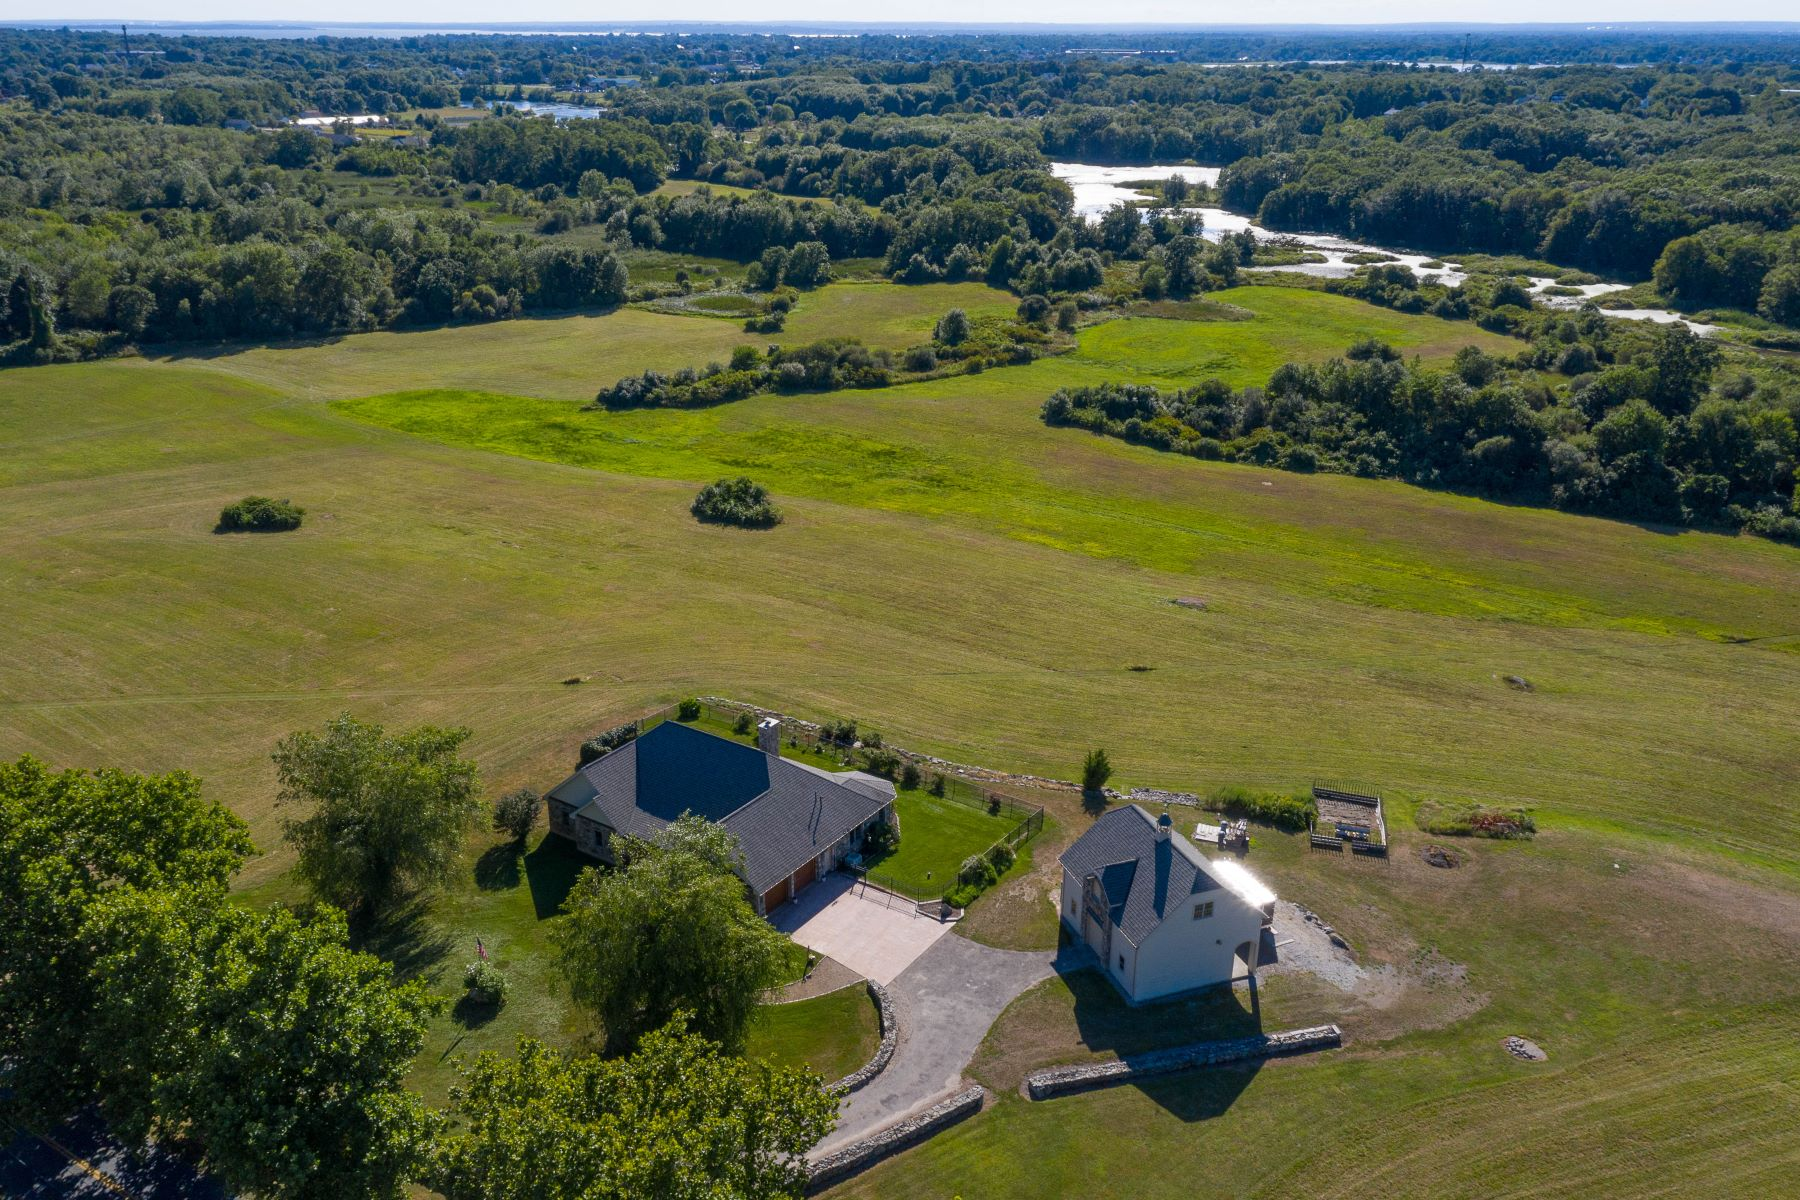 Single Family Homes for Sale at 495 Bushee Road, Swansea, MA 495 Bushee Road Swansea, Massachusetts 02777 United States